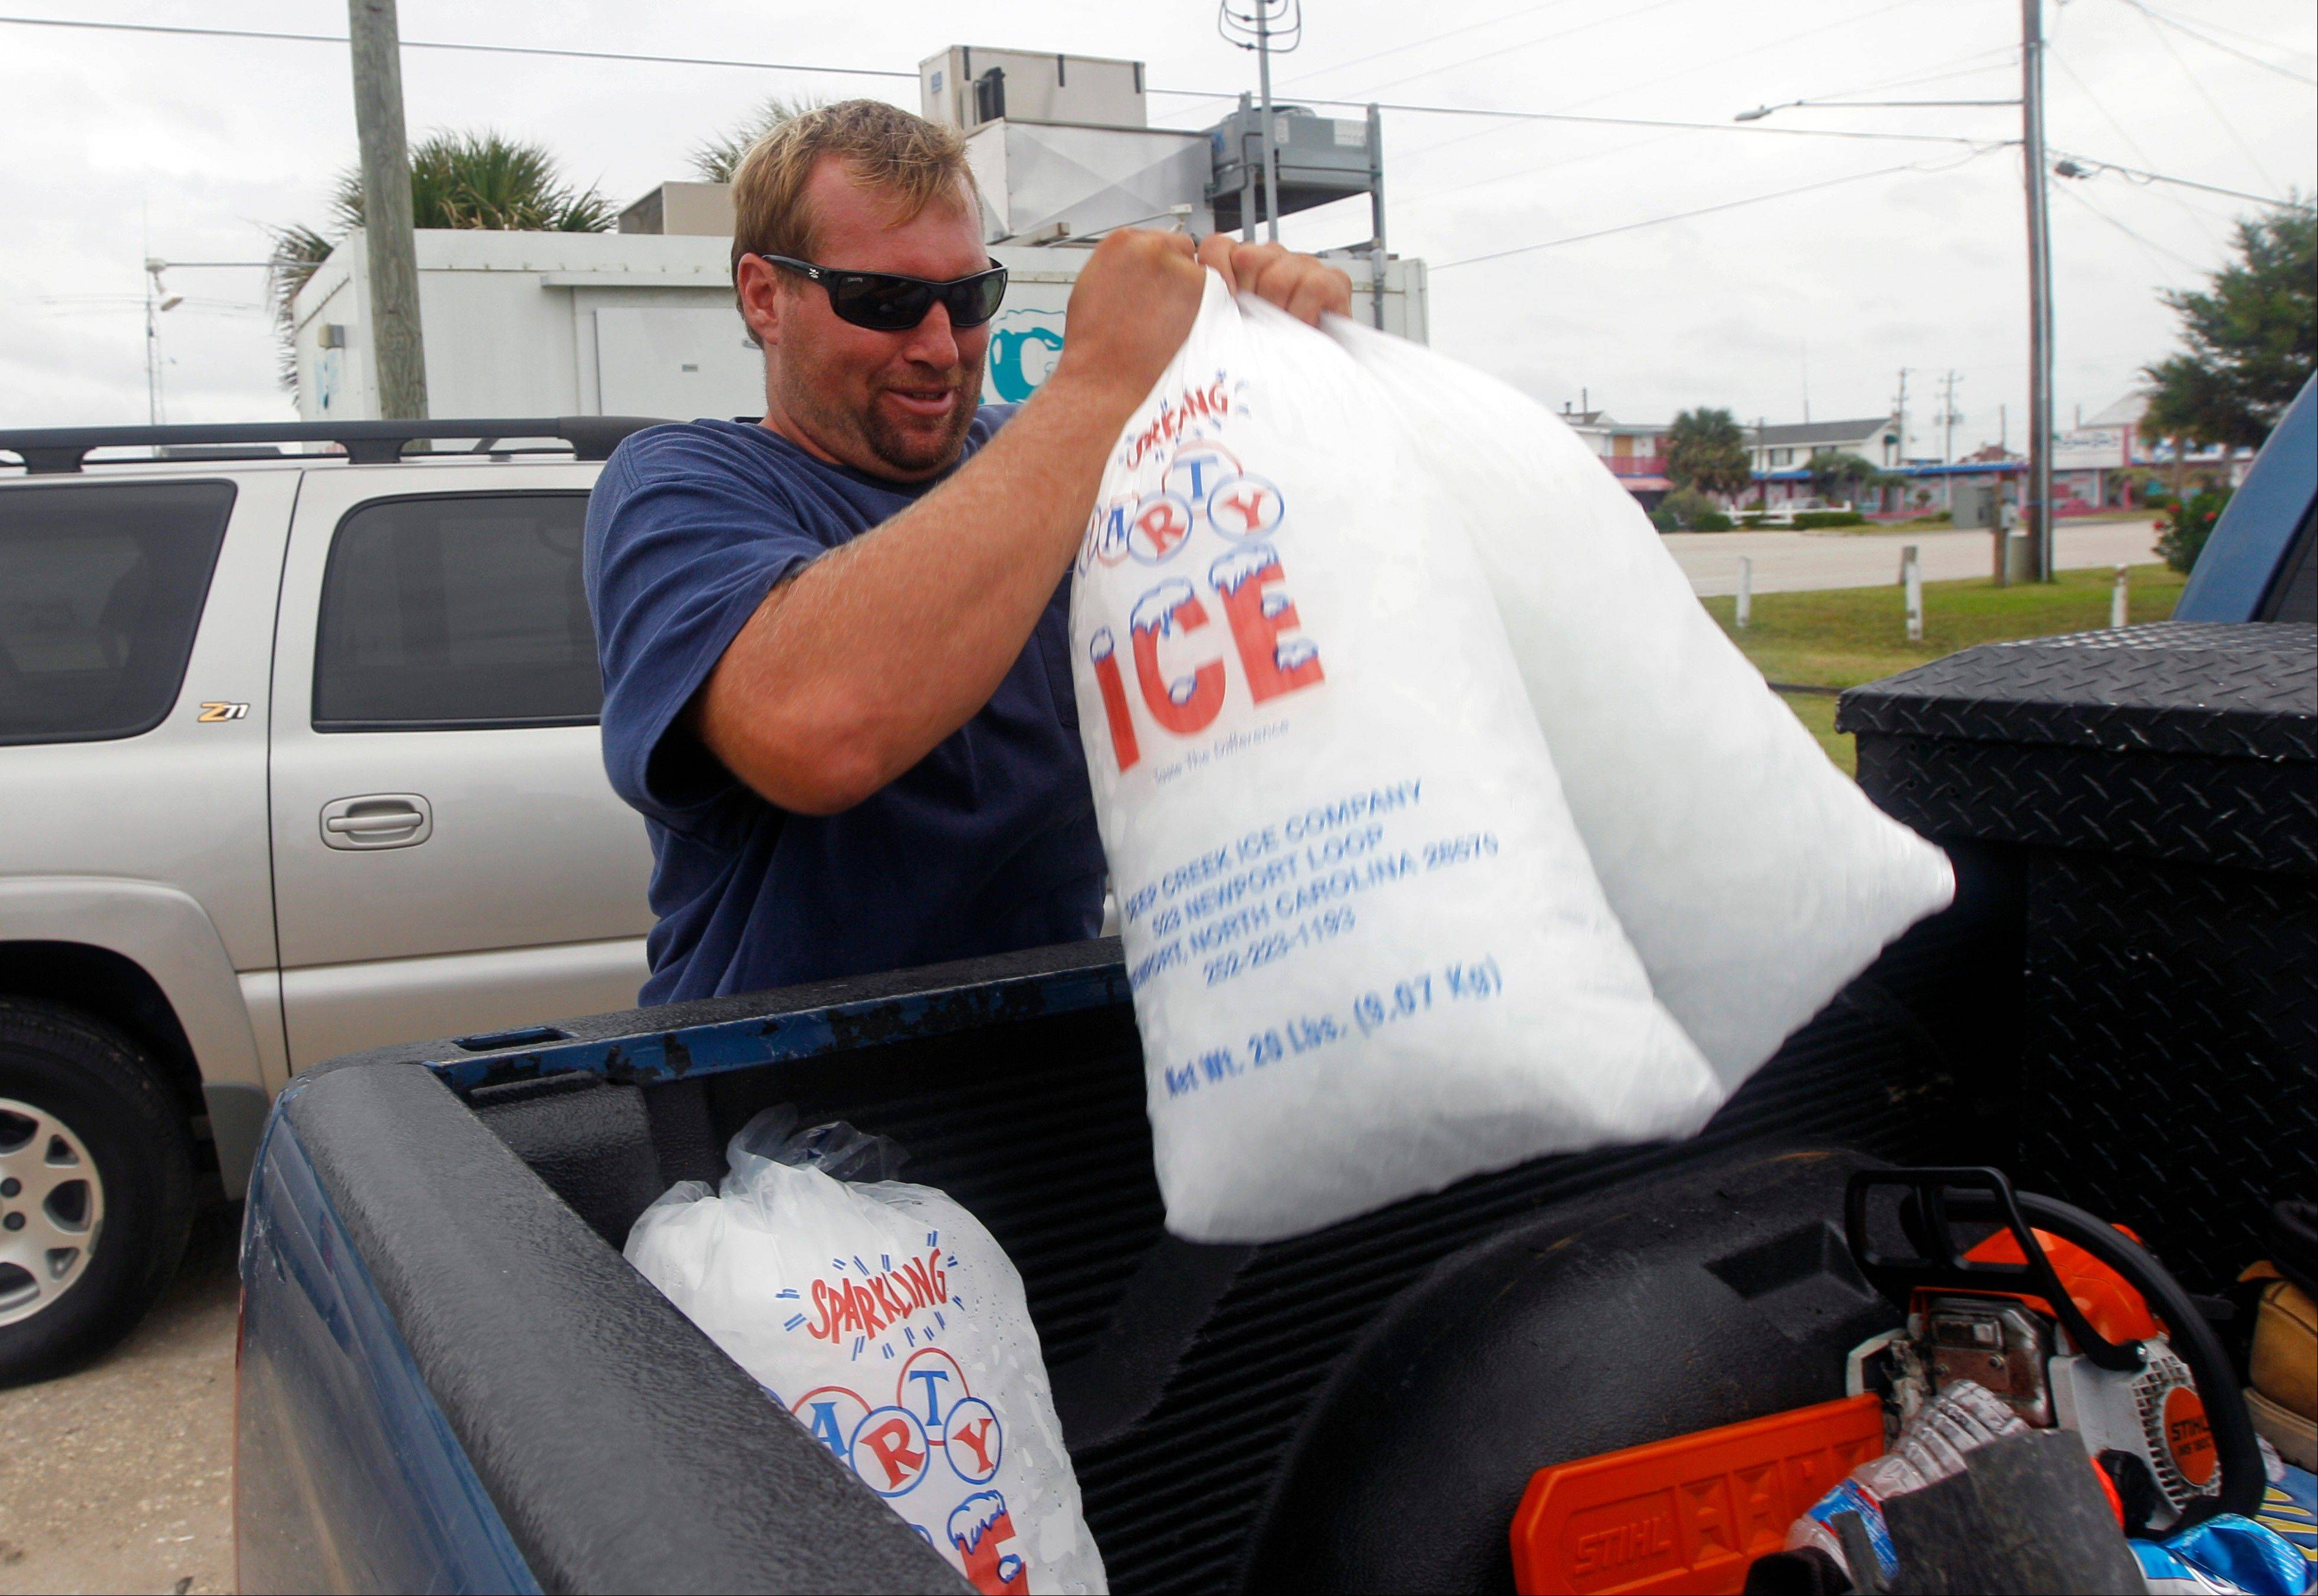 Mike Small, of Morehead City, N.C., loads bags of ice into his truck Friday in Atlantic Beach, N.C., as Hurricane Irene heads toward the North Carolina coast. Hurricane warnings remained in effect from North Carolina to New Jersey. Hurricane watches were in effect even farther north and included Long Island, Martha's Vineyard and Nantucket, Mass.